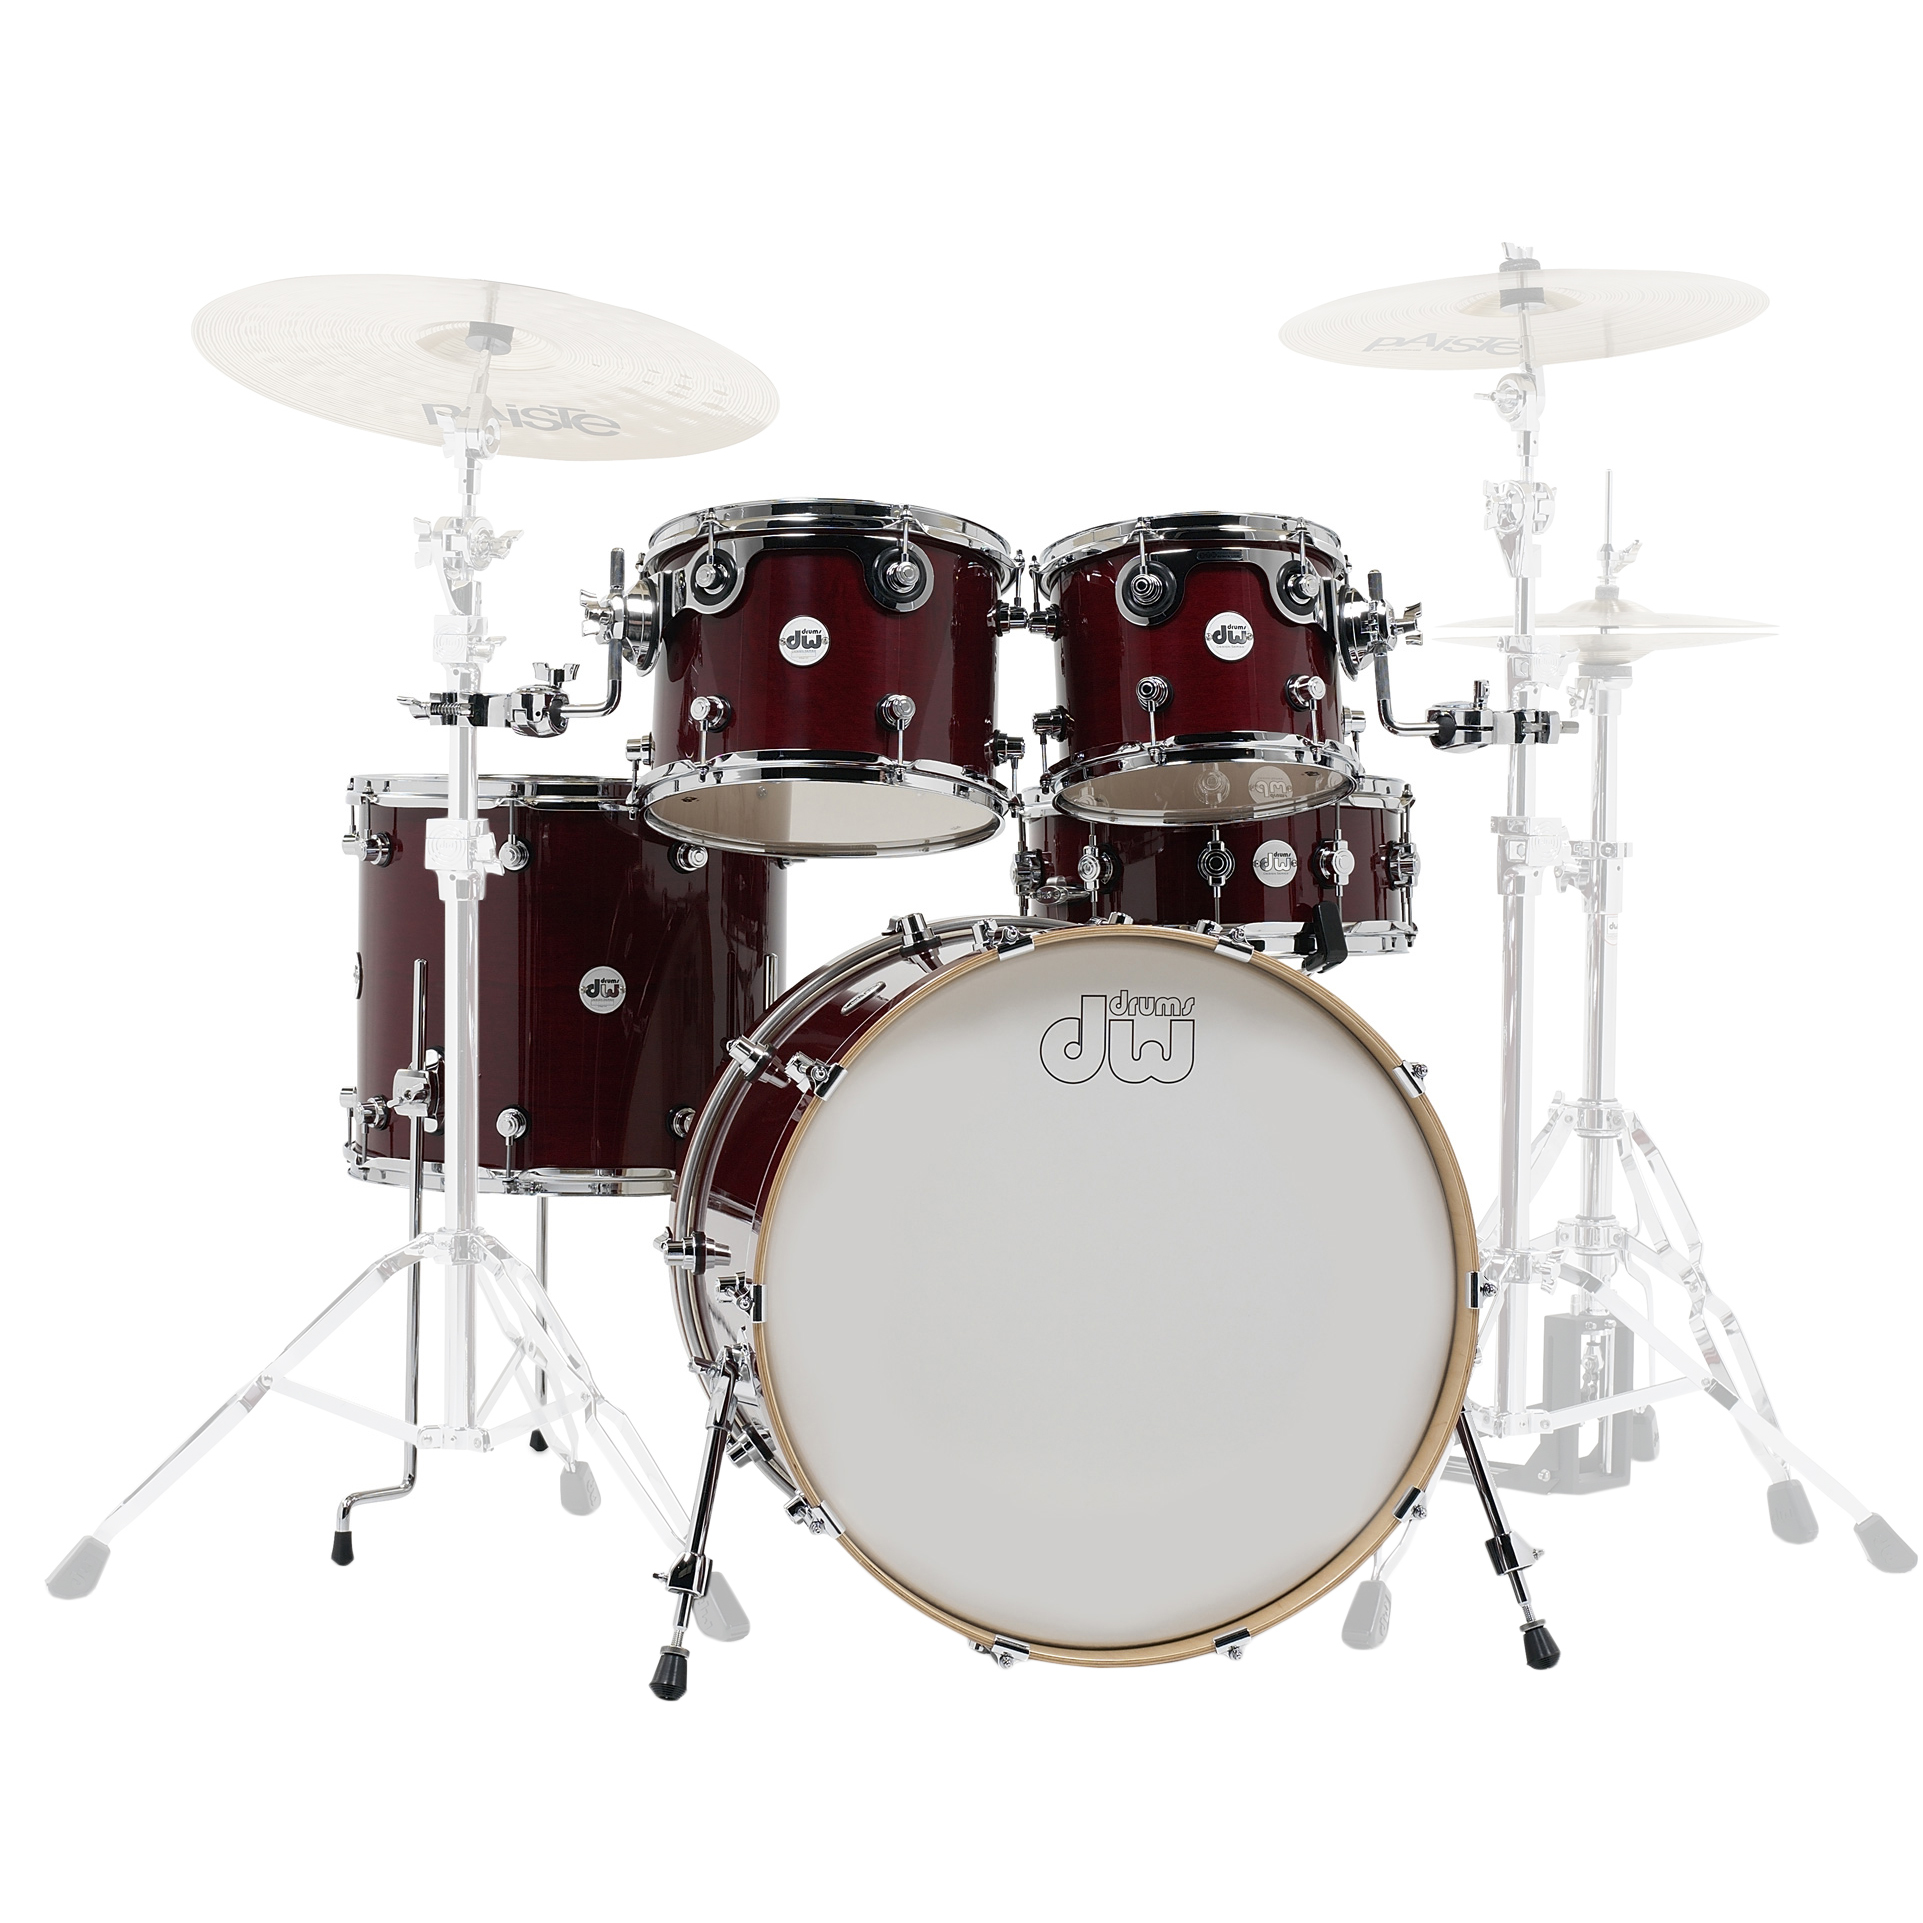 "DW Design Series 5-Piece Drum Set Shell Pack (22"" Bass, 10/12/16"" Toms, 14"" Snare)"